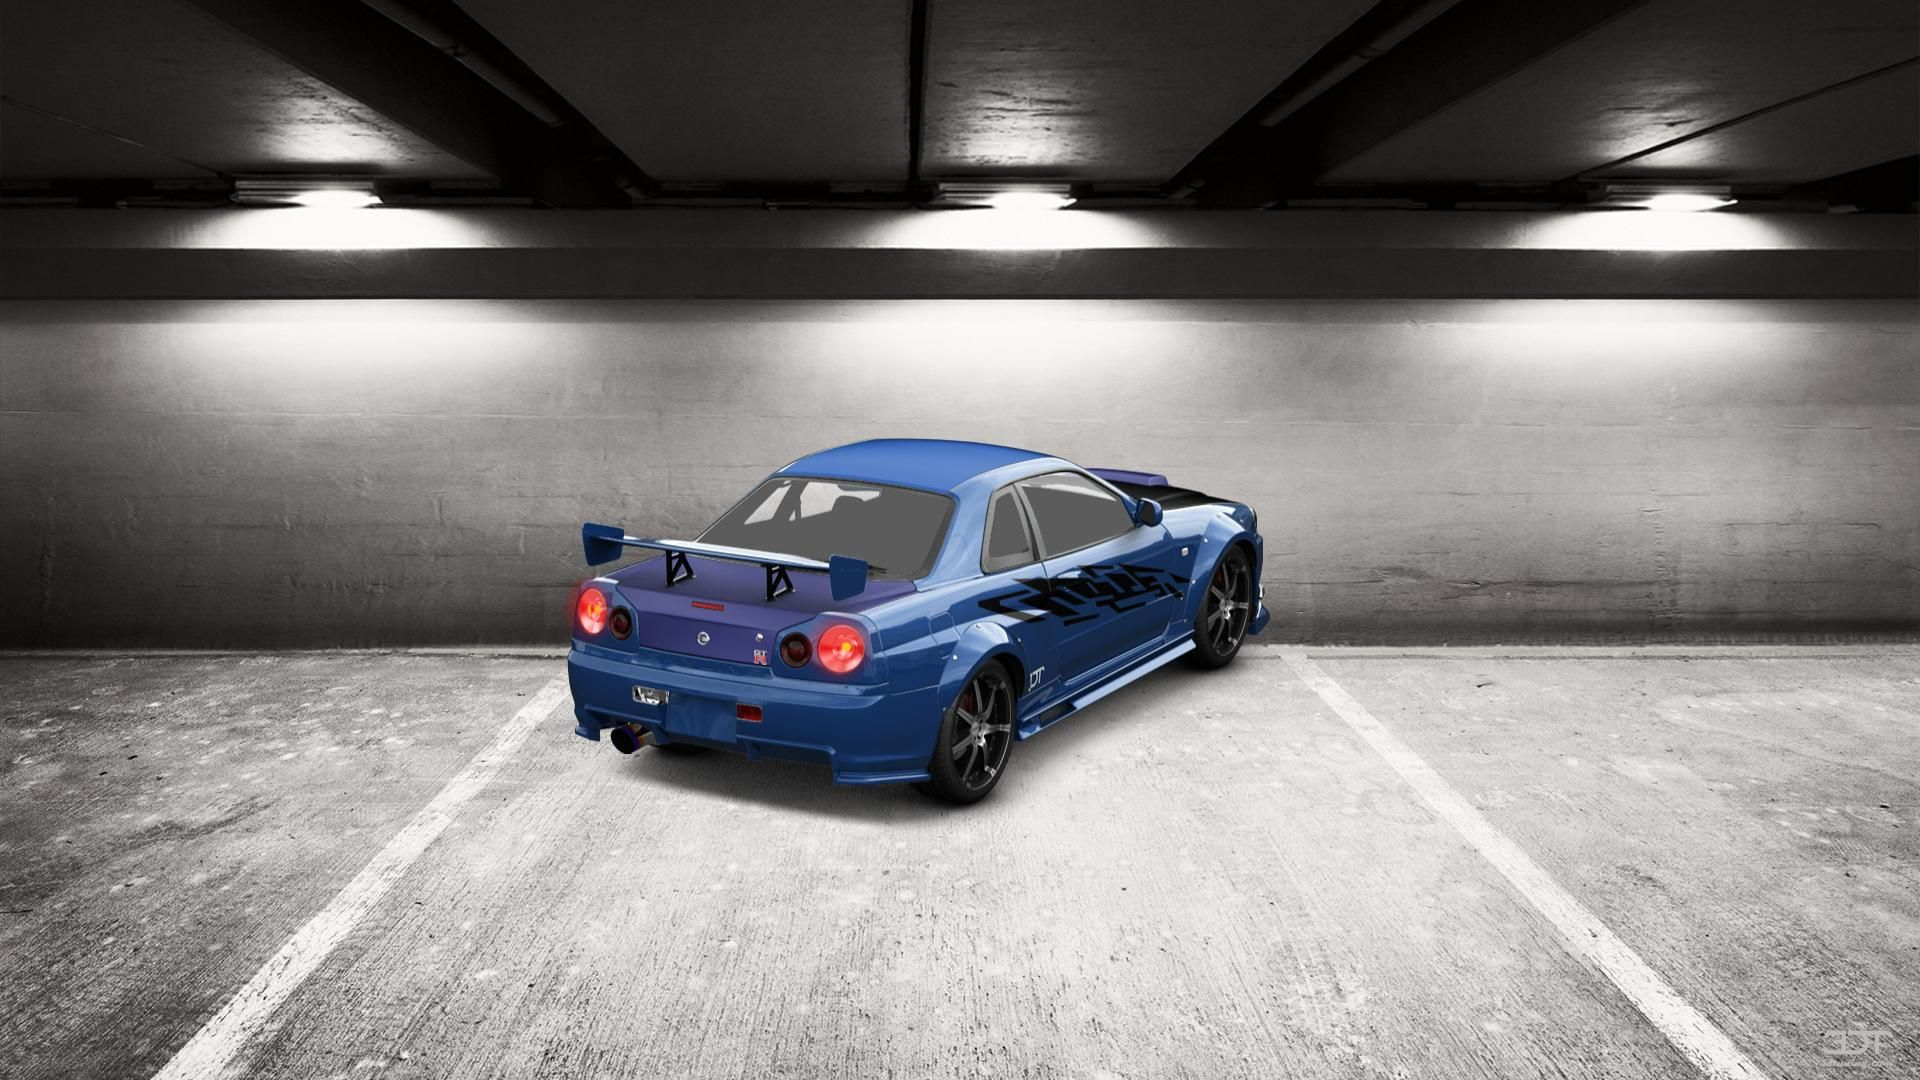 Checkout my tuning nissan skylinegt r 2001 at 3dtuning 3dtuning tuning